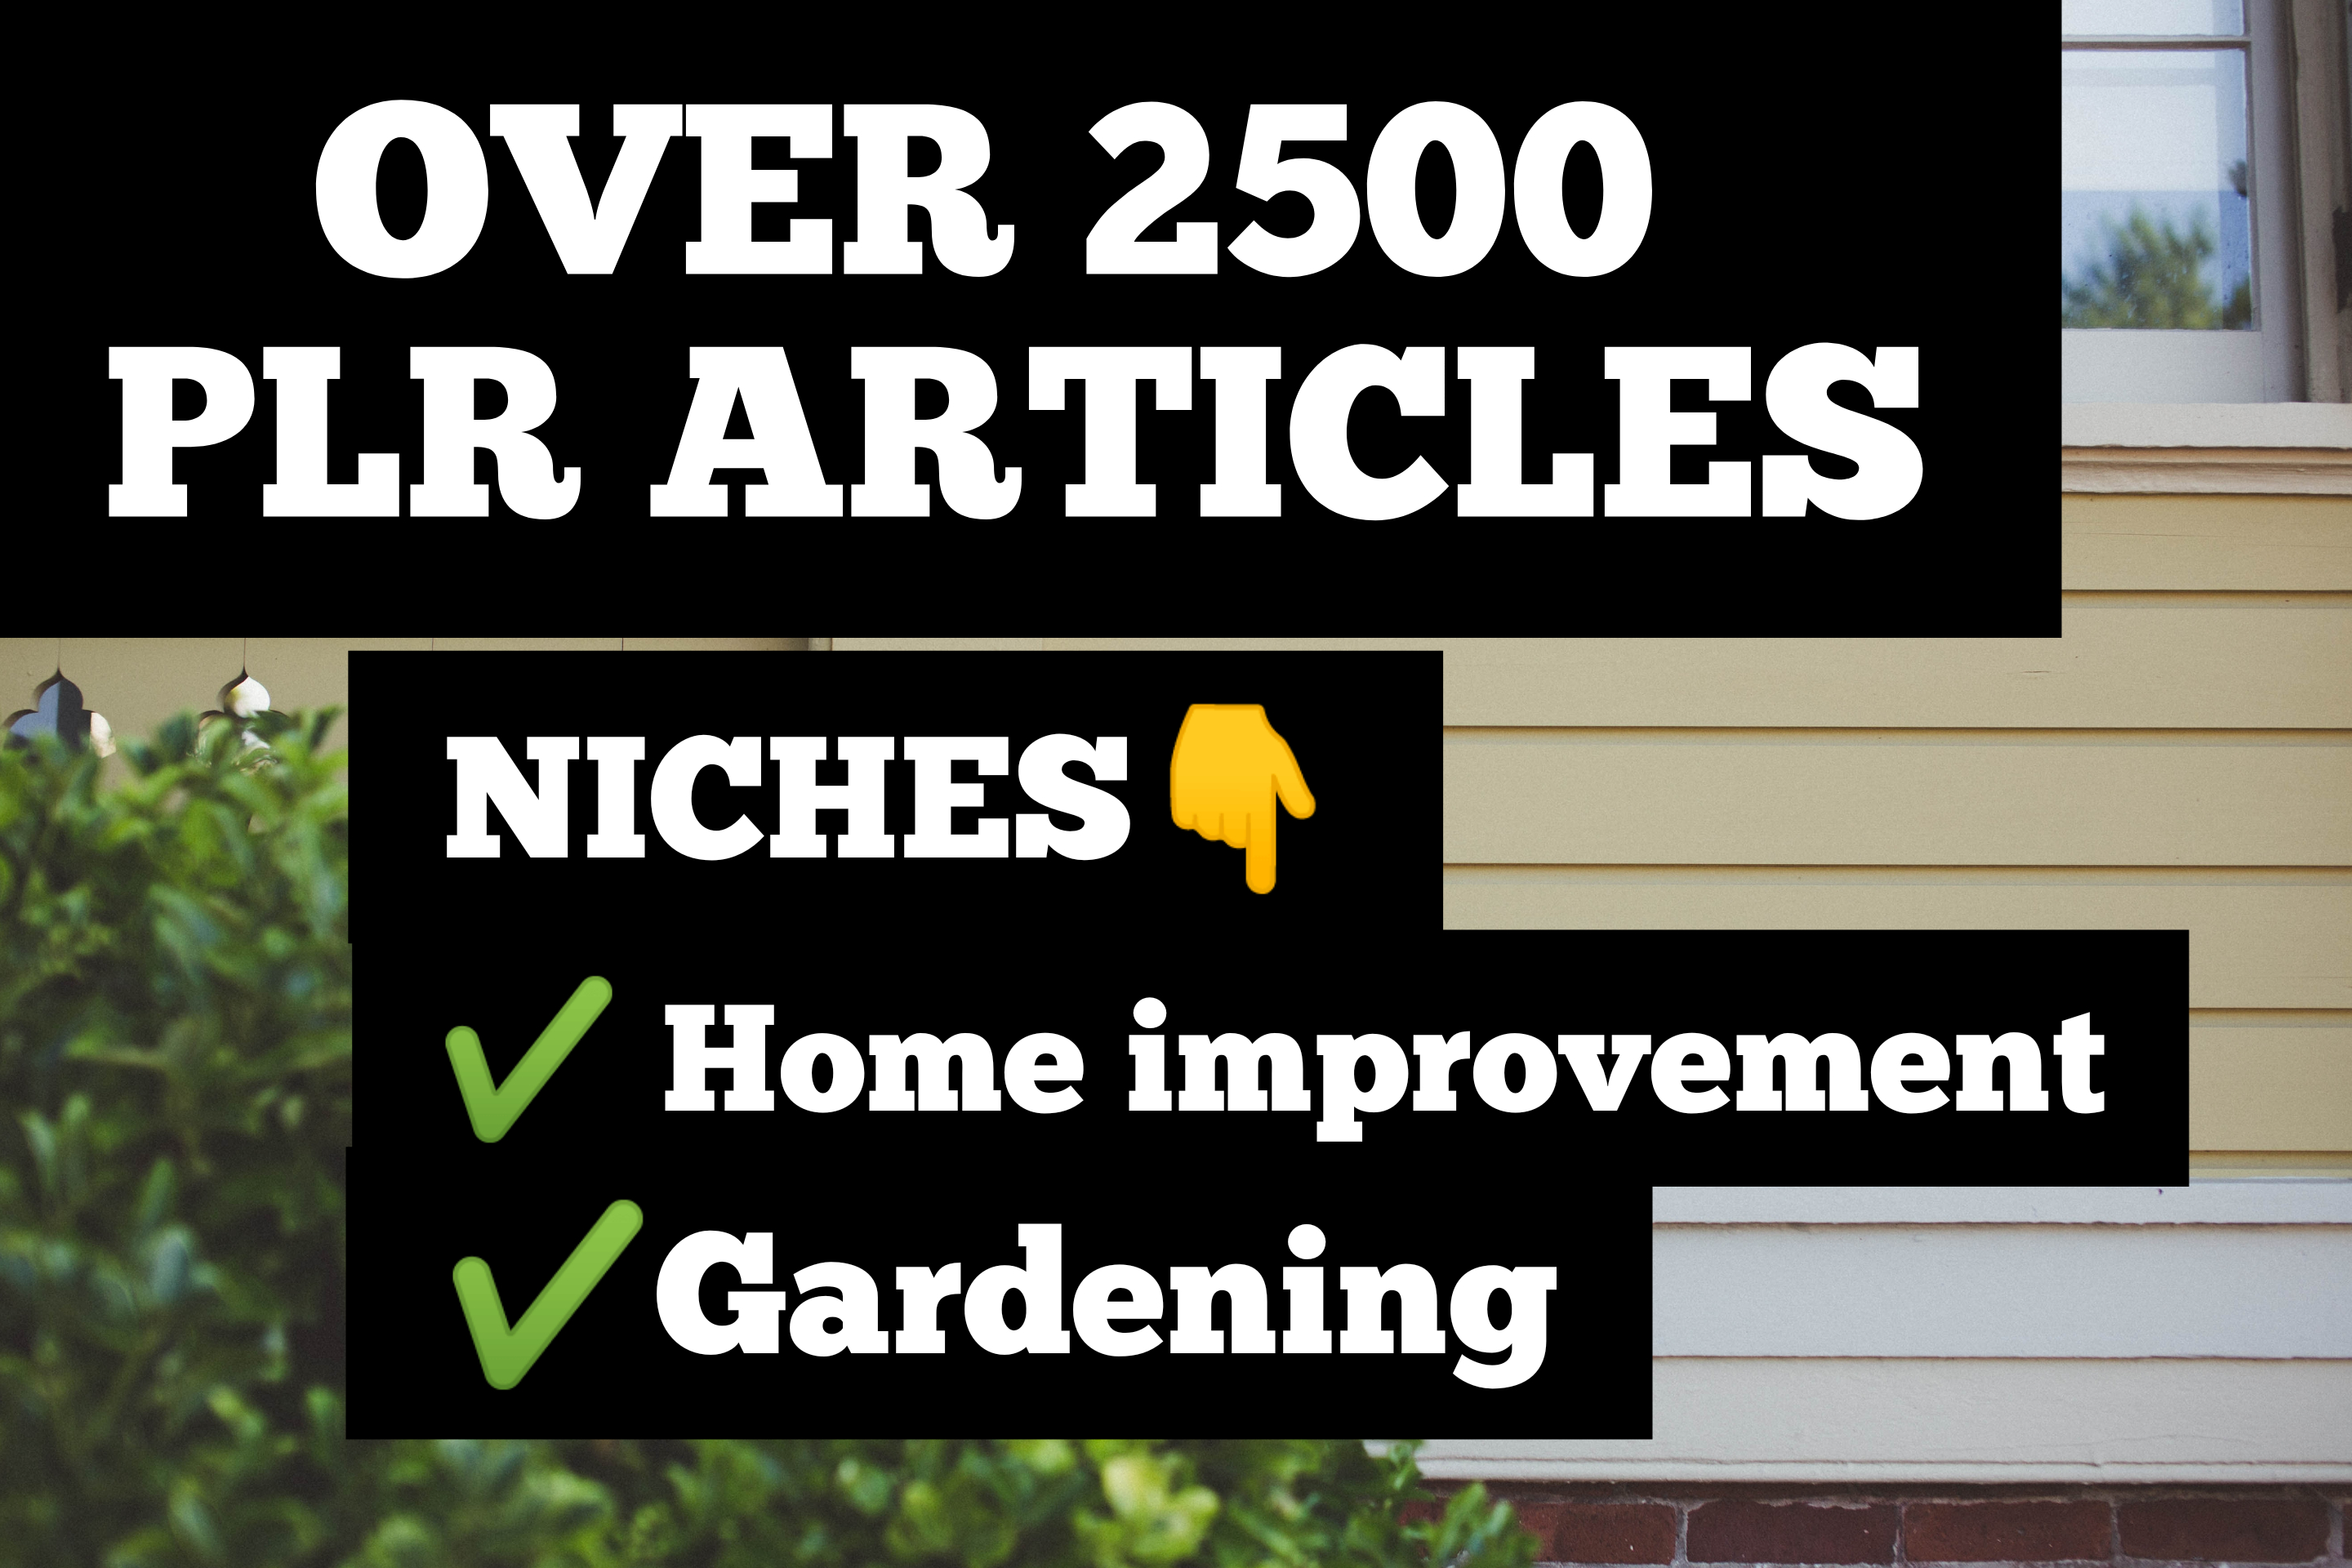 I will send you over 2500 PLR Articles on Home improvement and Gardening Niche